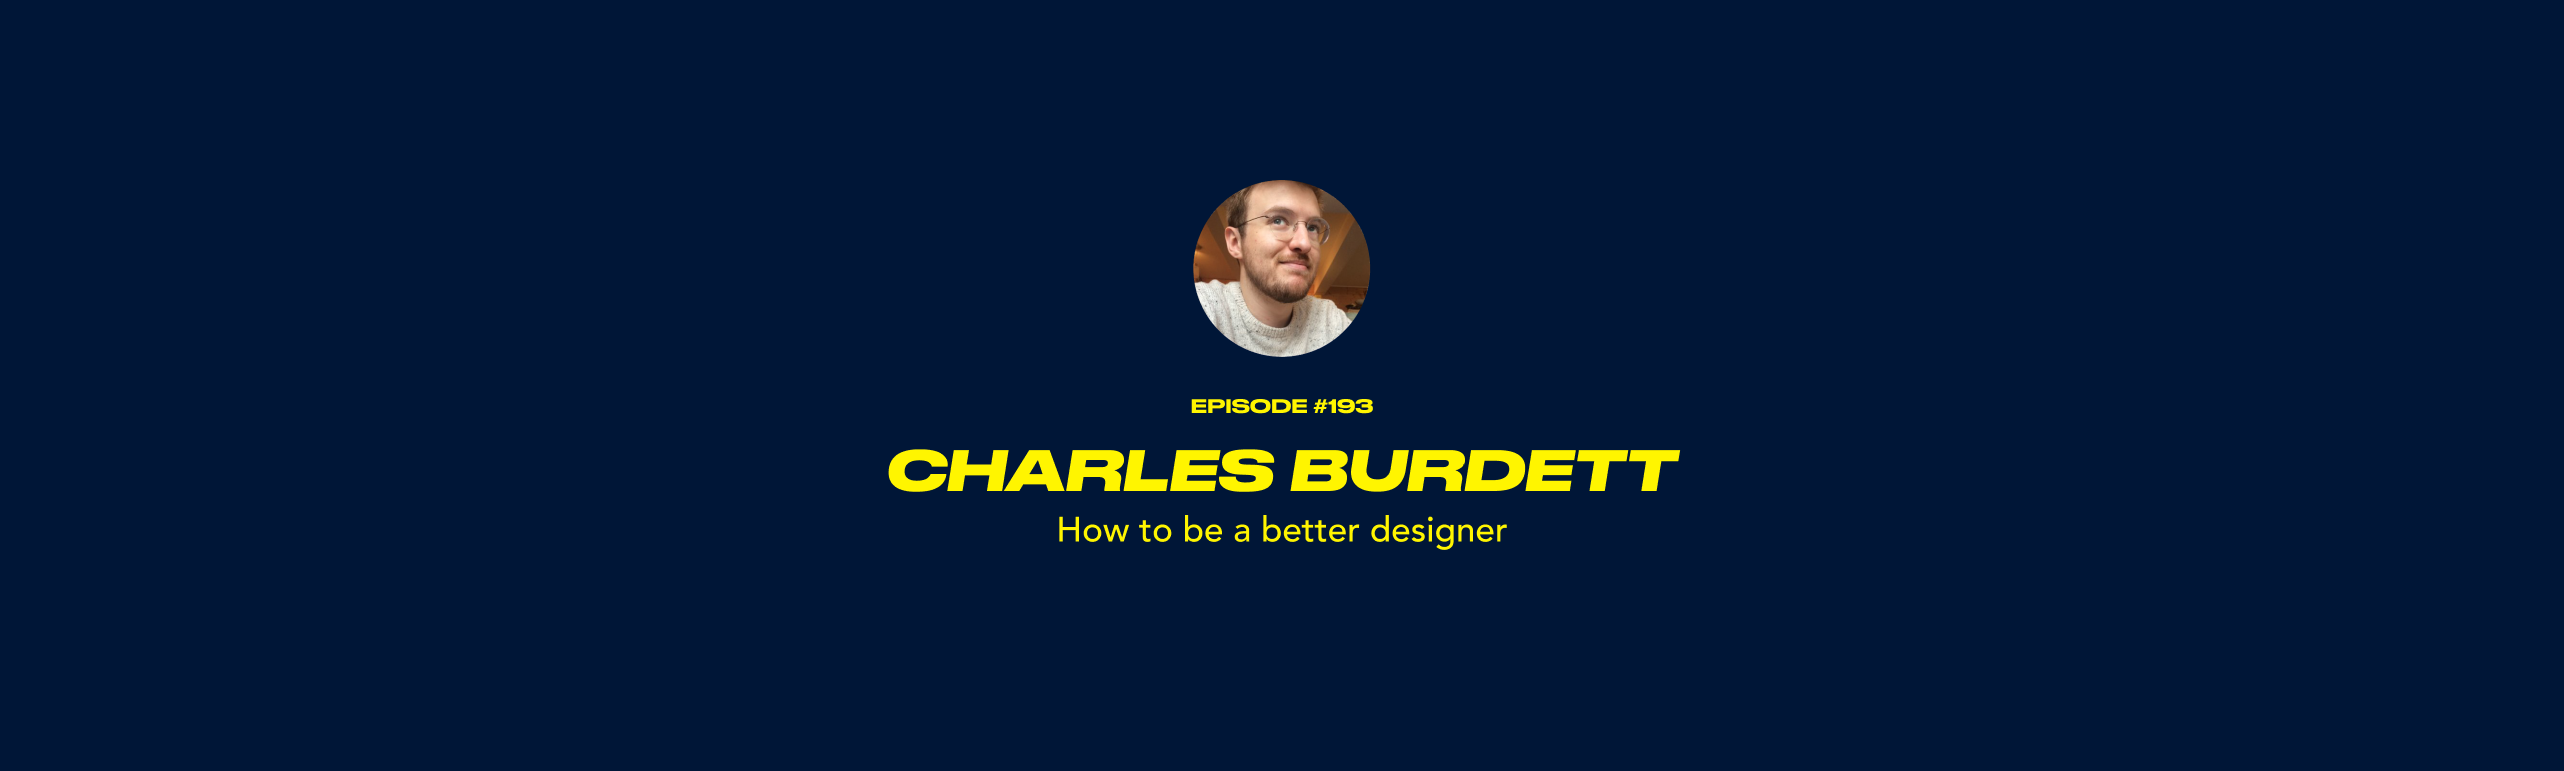 Charles Burdett - How to be a better designer